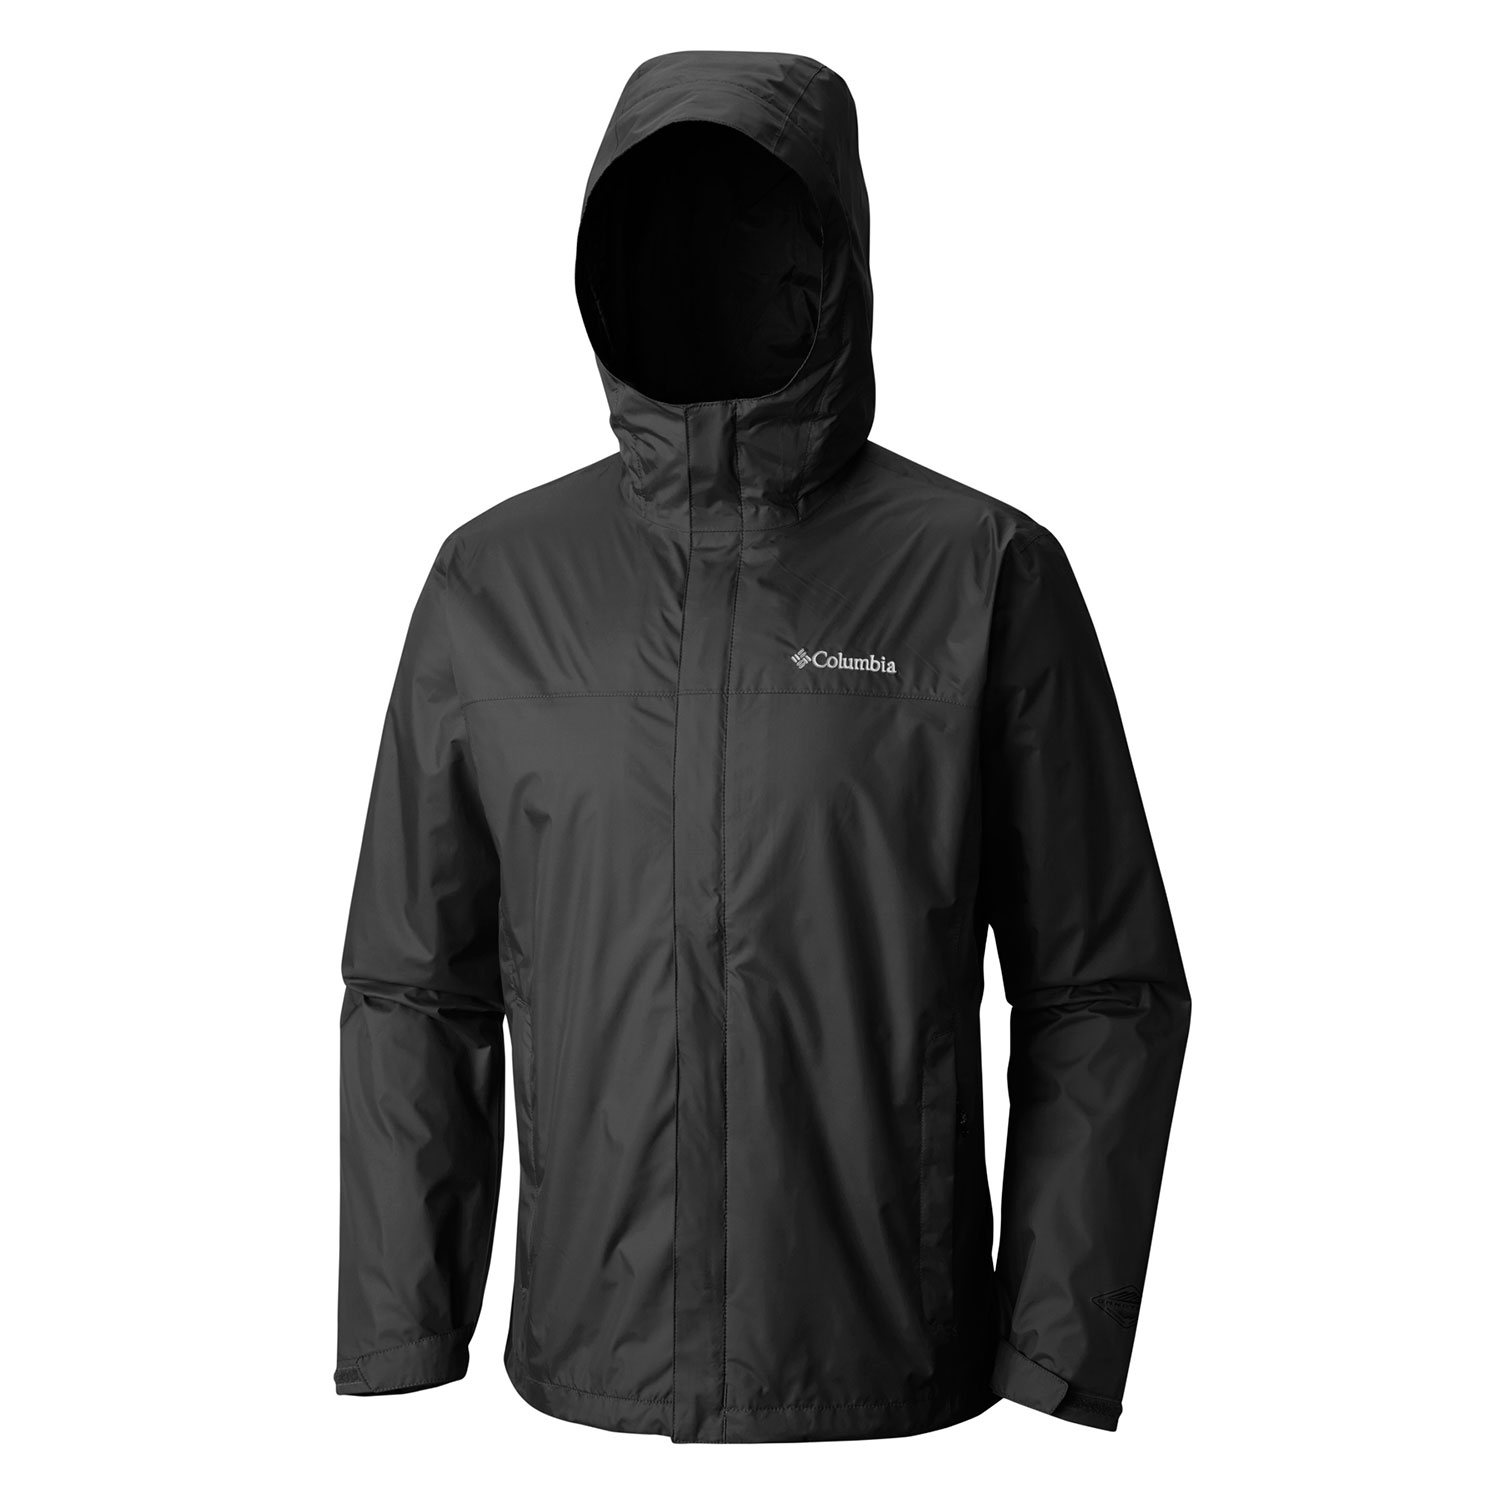 ec3028324 Columbia Men's Watertight II Rain Jacket.